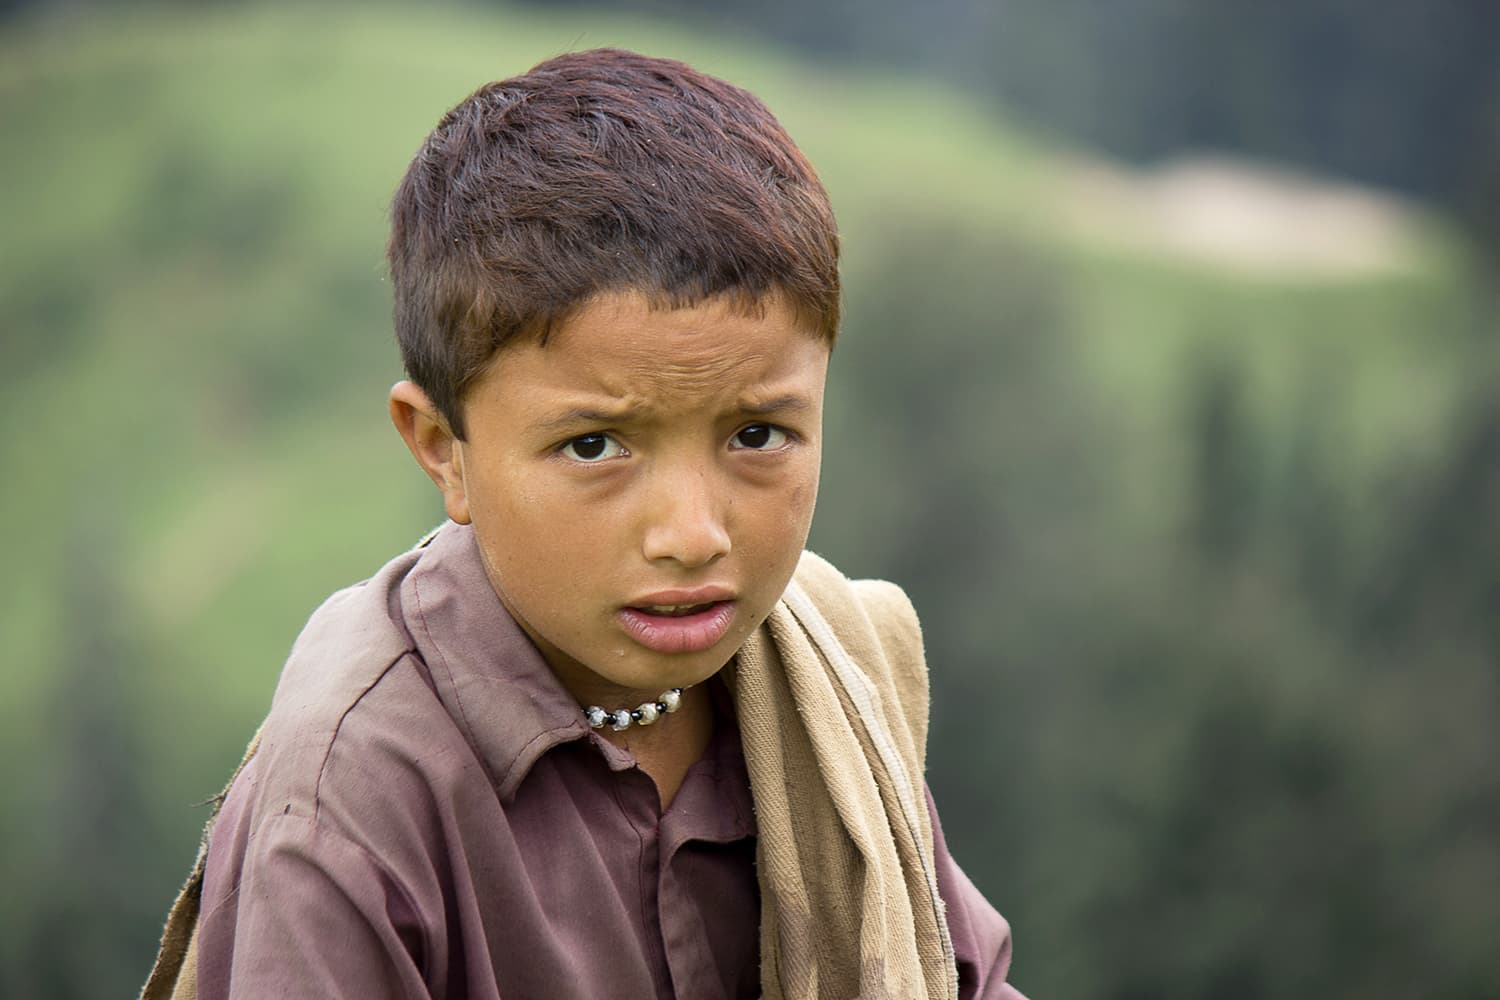 A curious, friendly boy at Araam Gali.